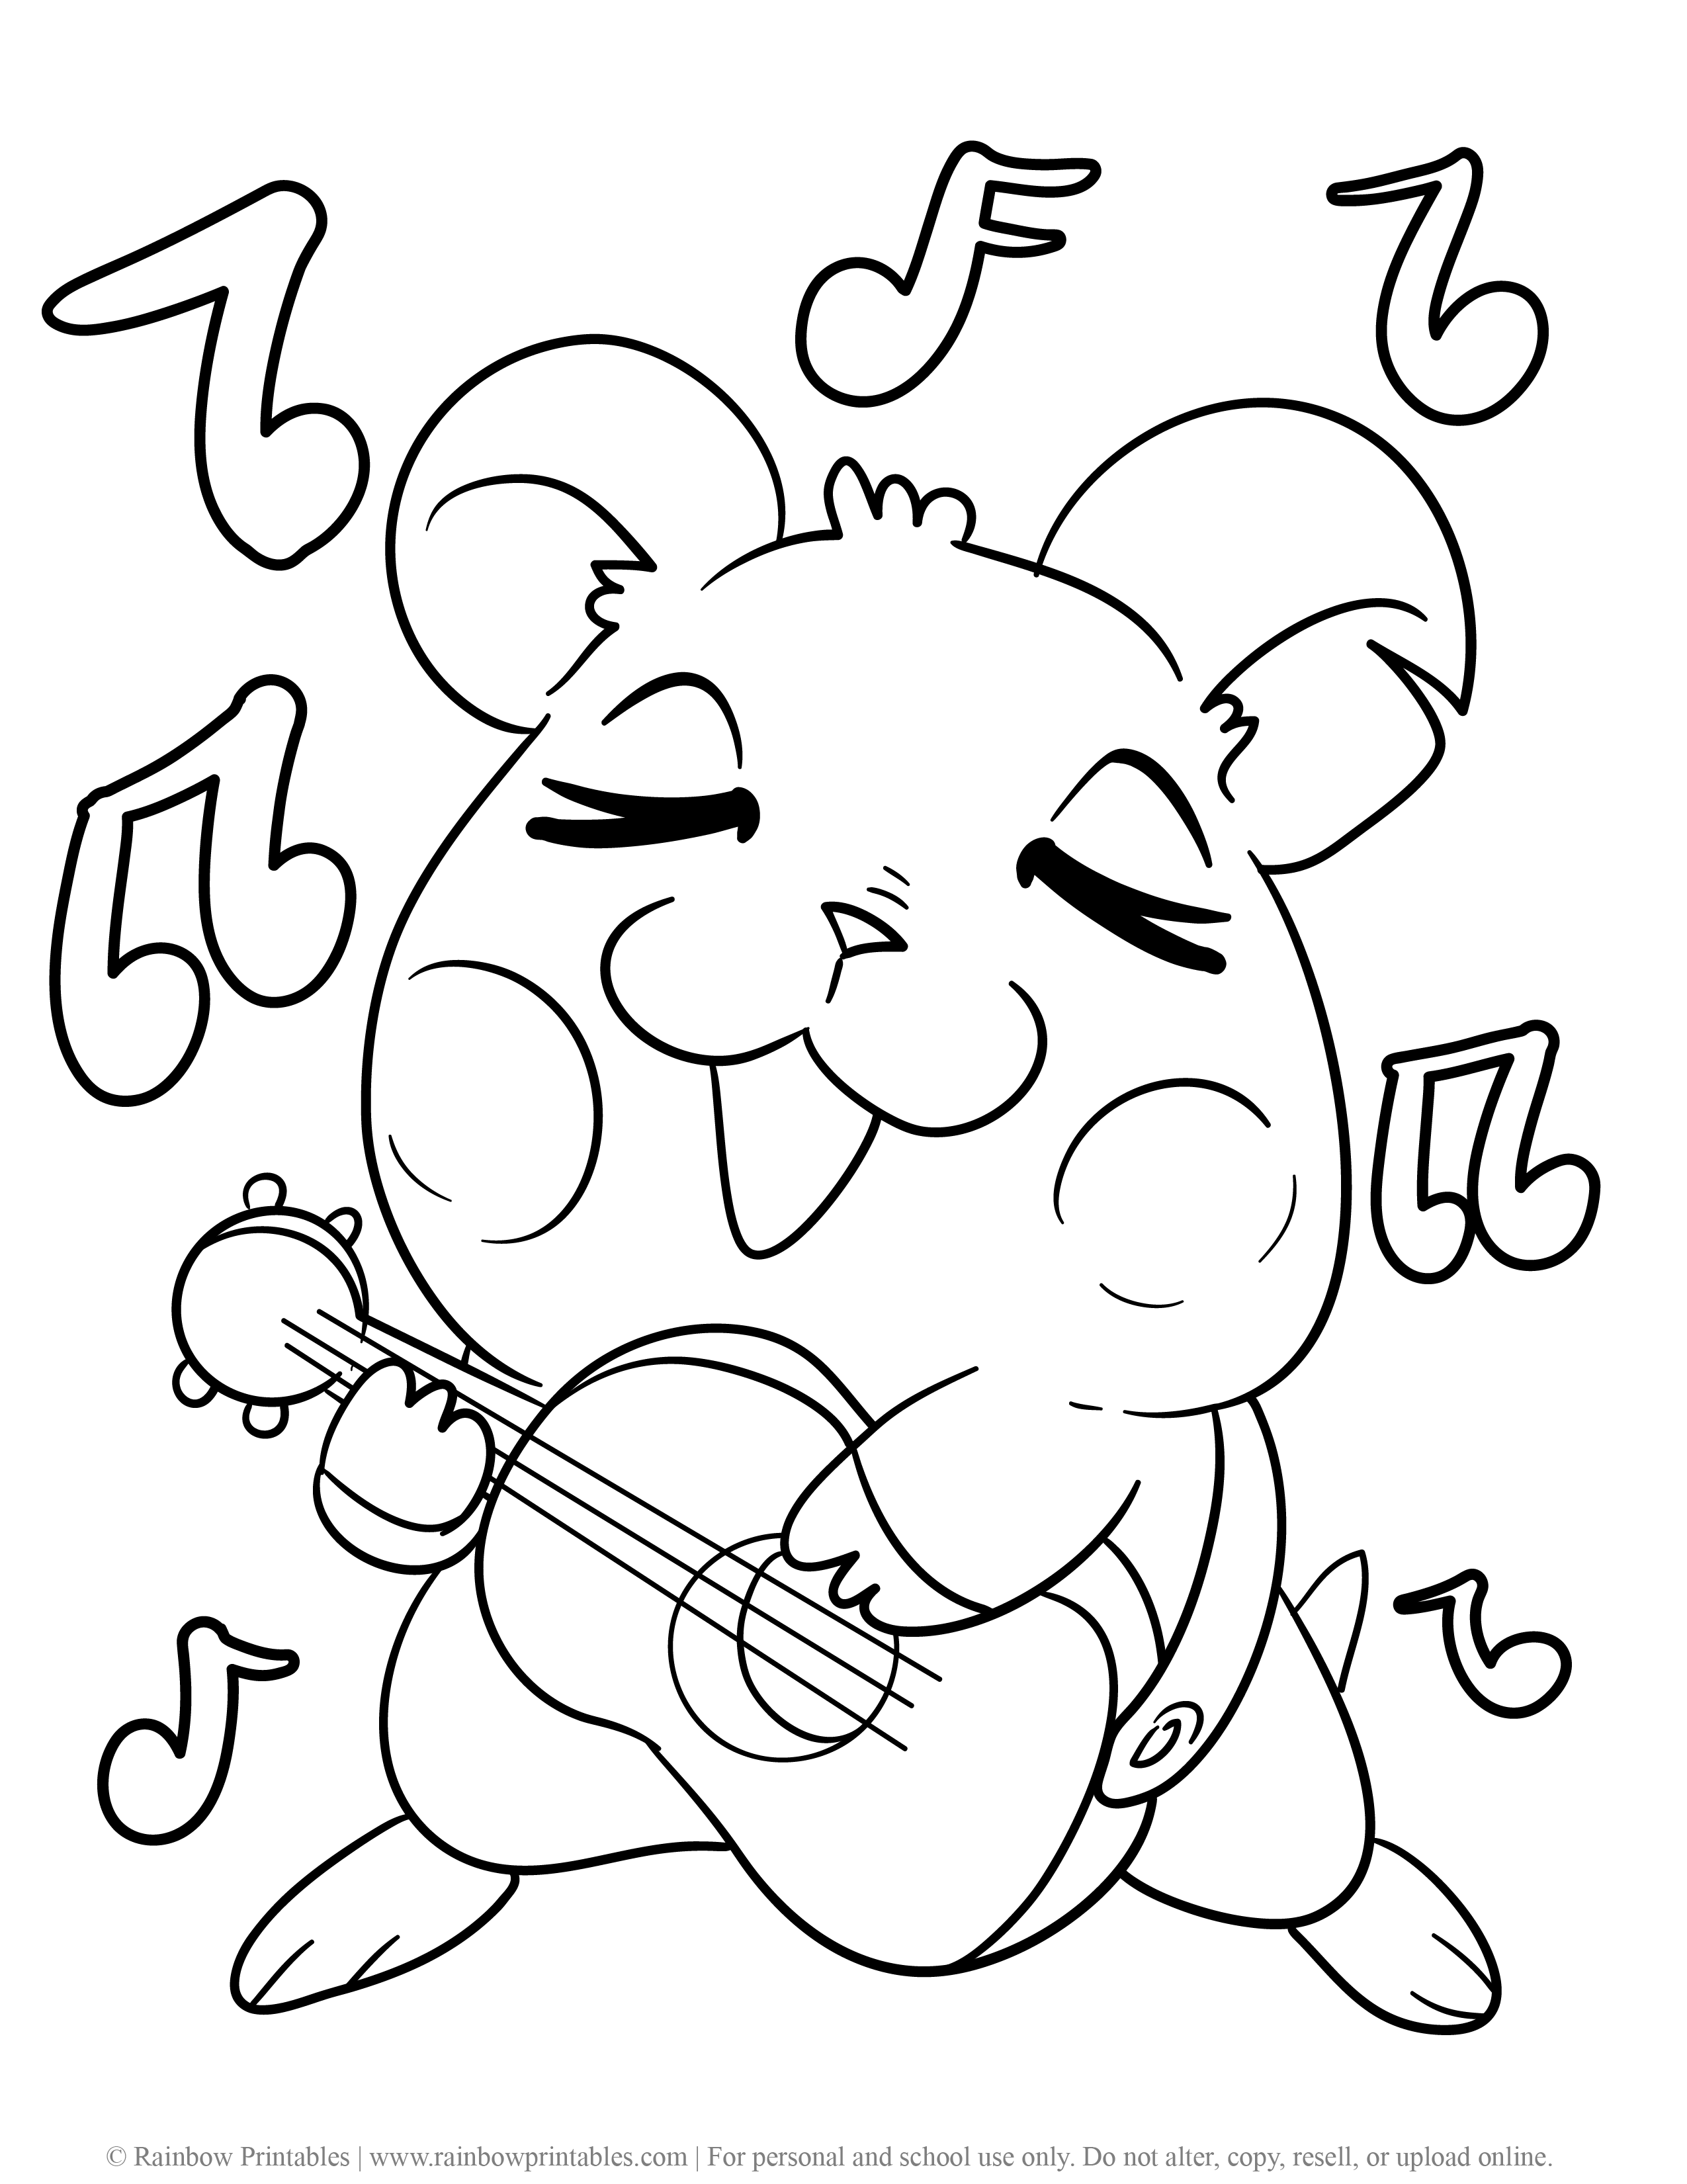 Cute Hamster Rodent Guinea Pig Singing Musical Guitar Music Notes Coloring Page for Kids